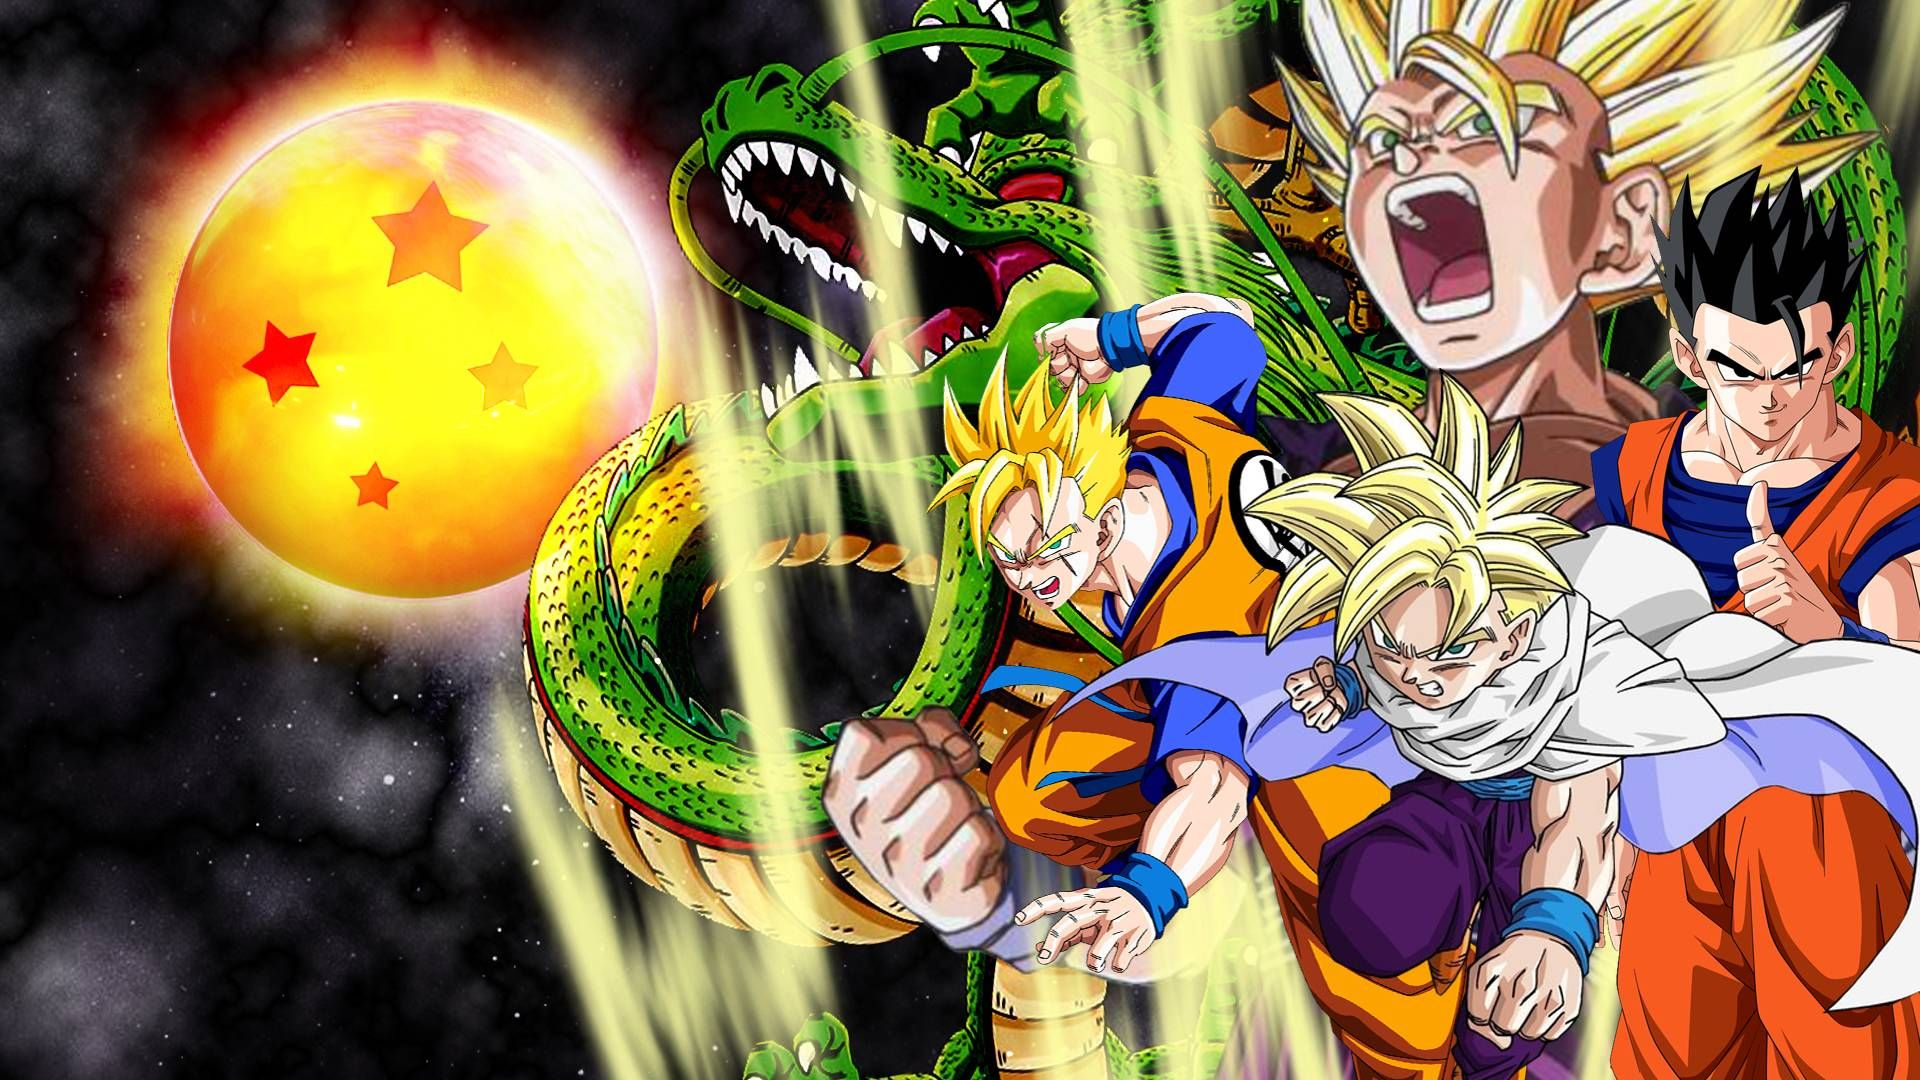 gohan vs cell wallpapersebeq13 on deviantart | images wallpapers